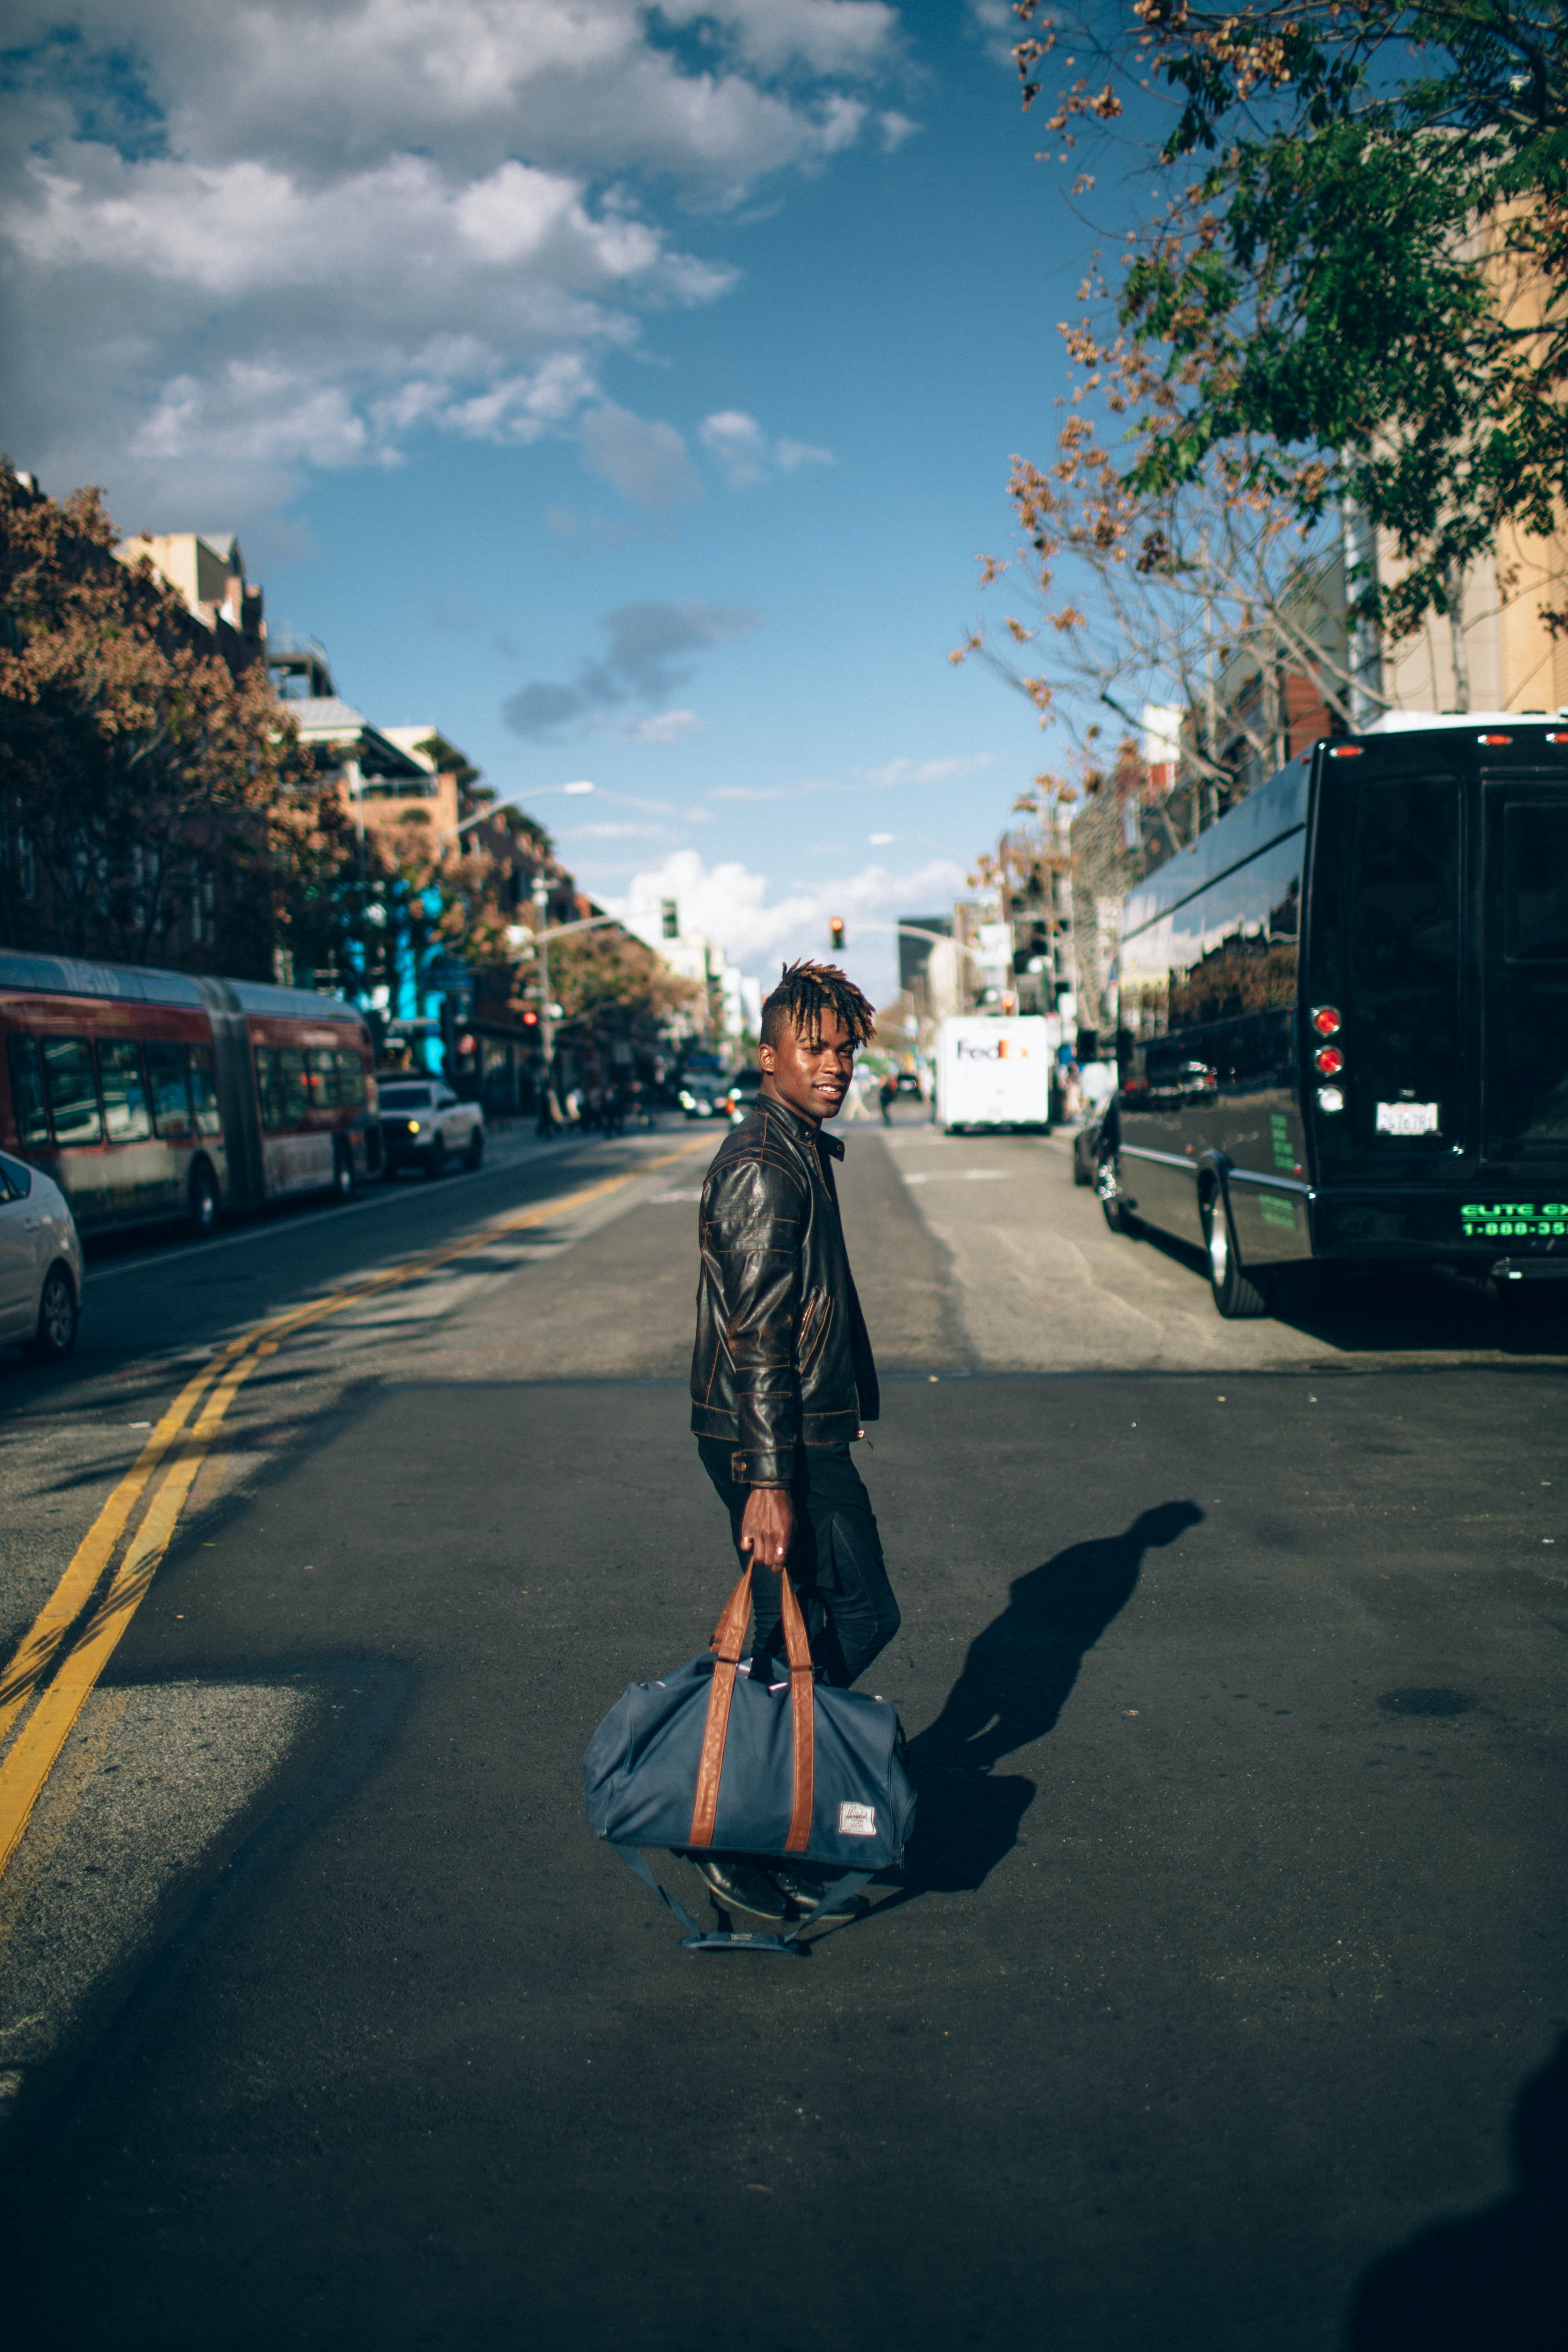 man walking on the street while carrying bag